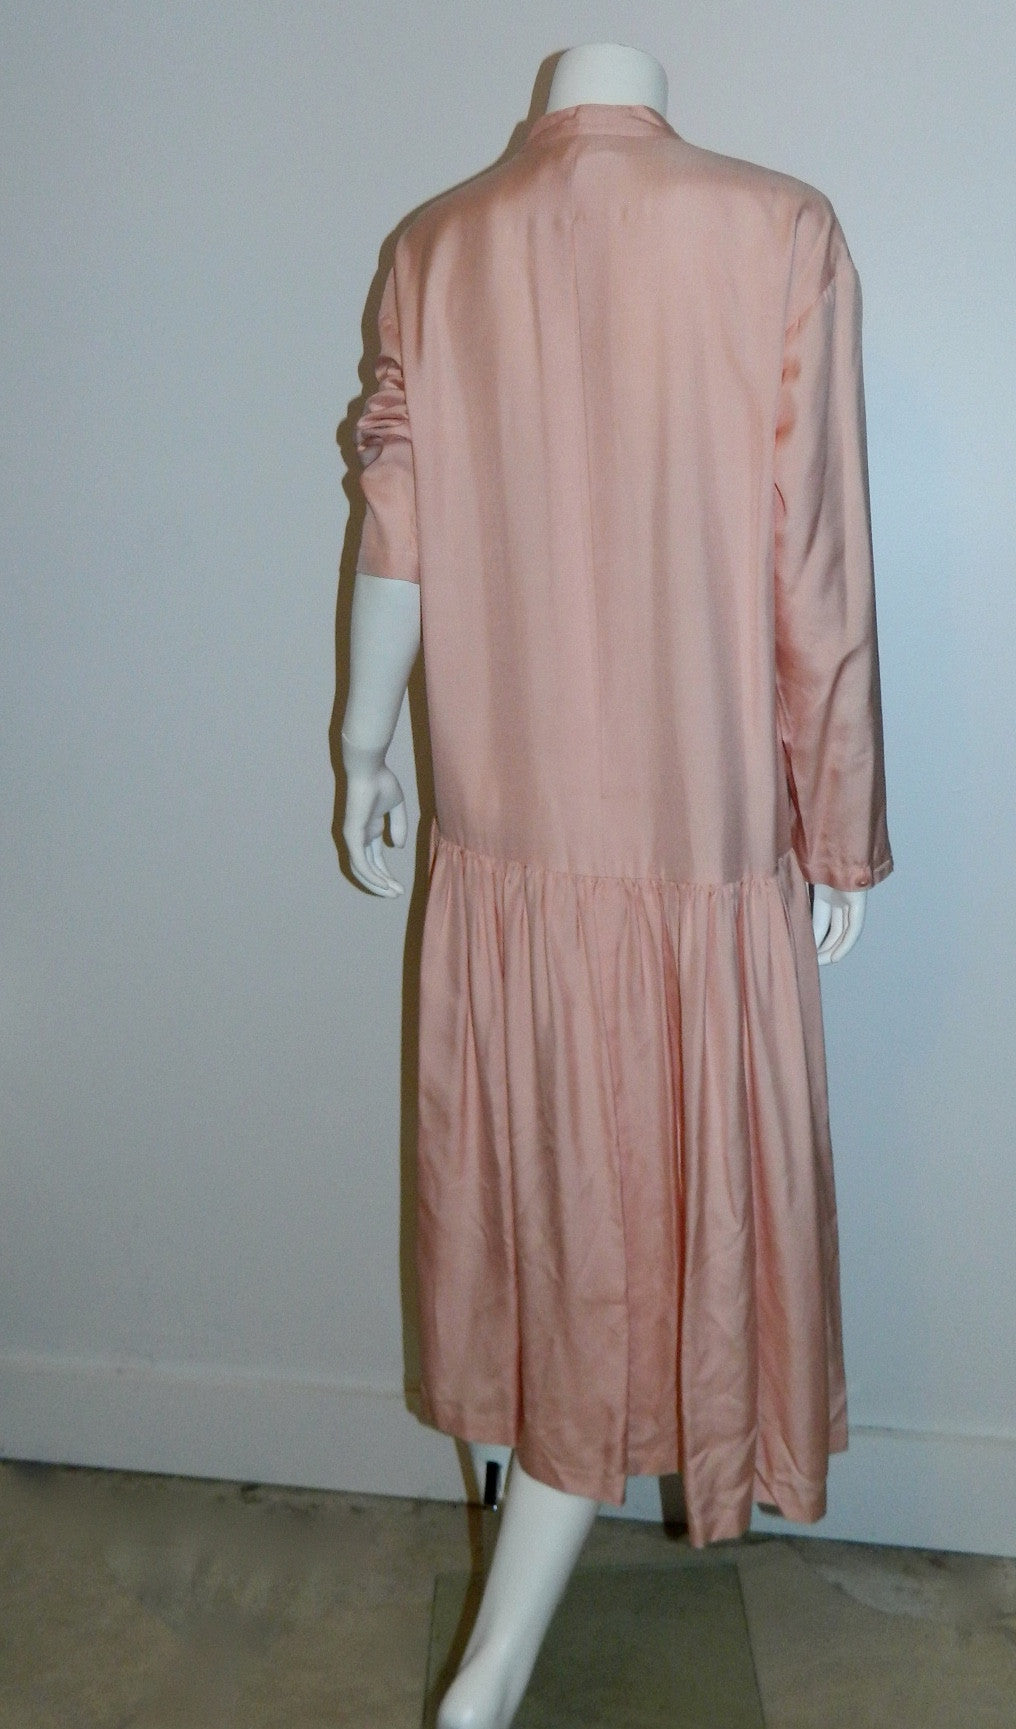 vintage silk dress / 1980s pink Arlequin PARIS drop waist shirtdress OS